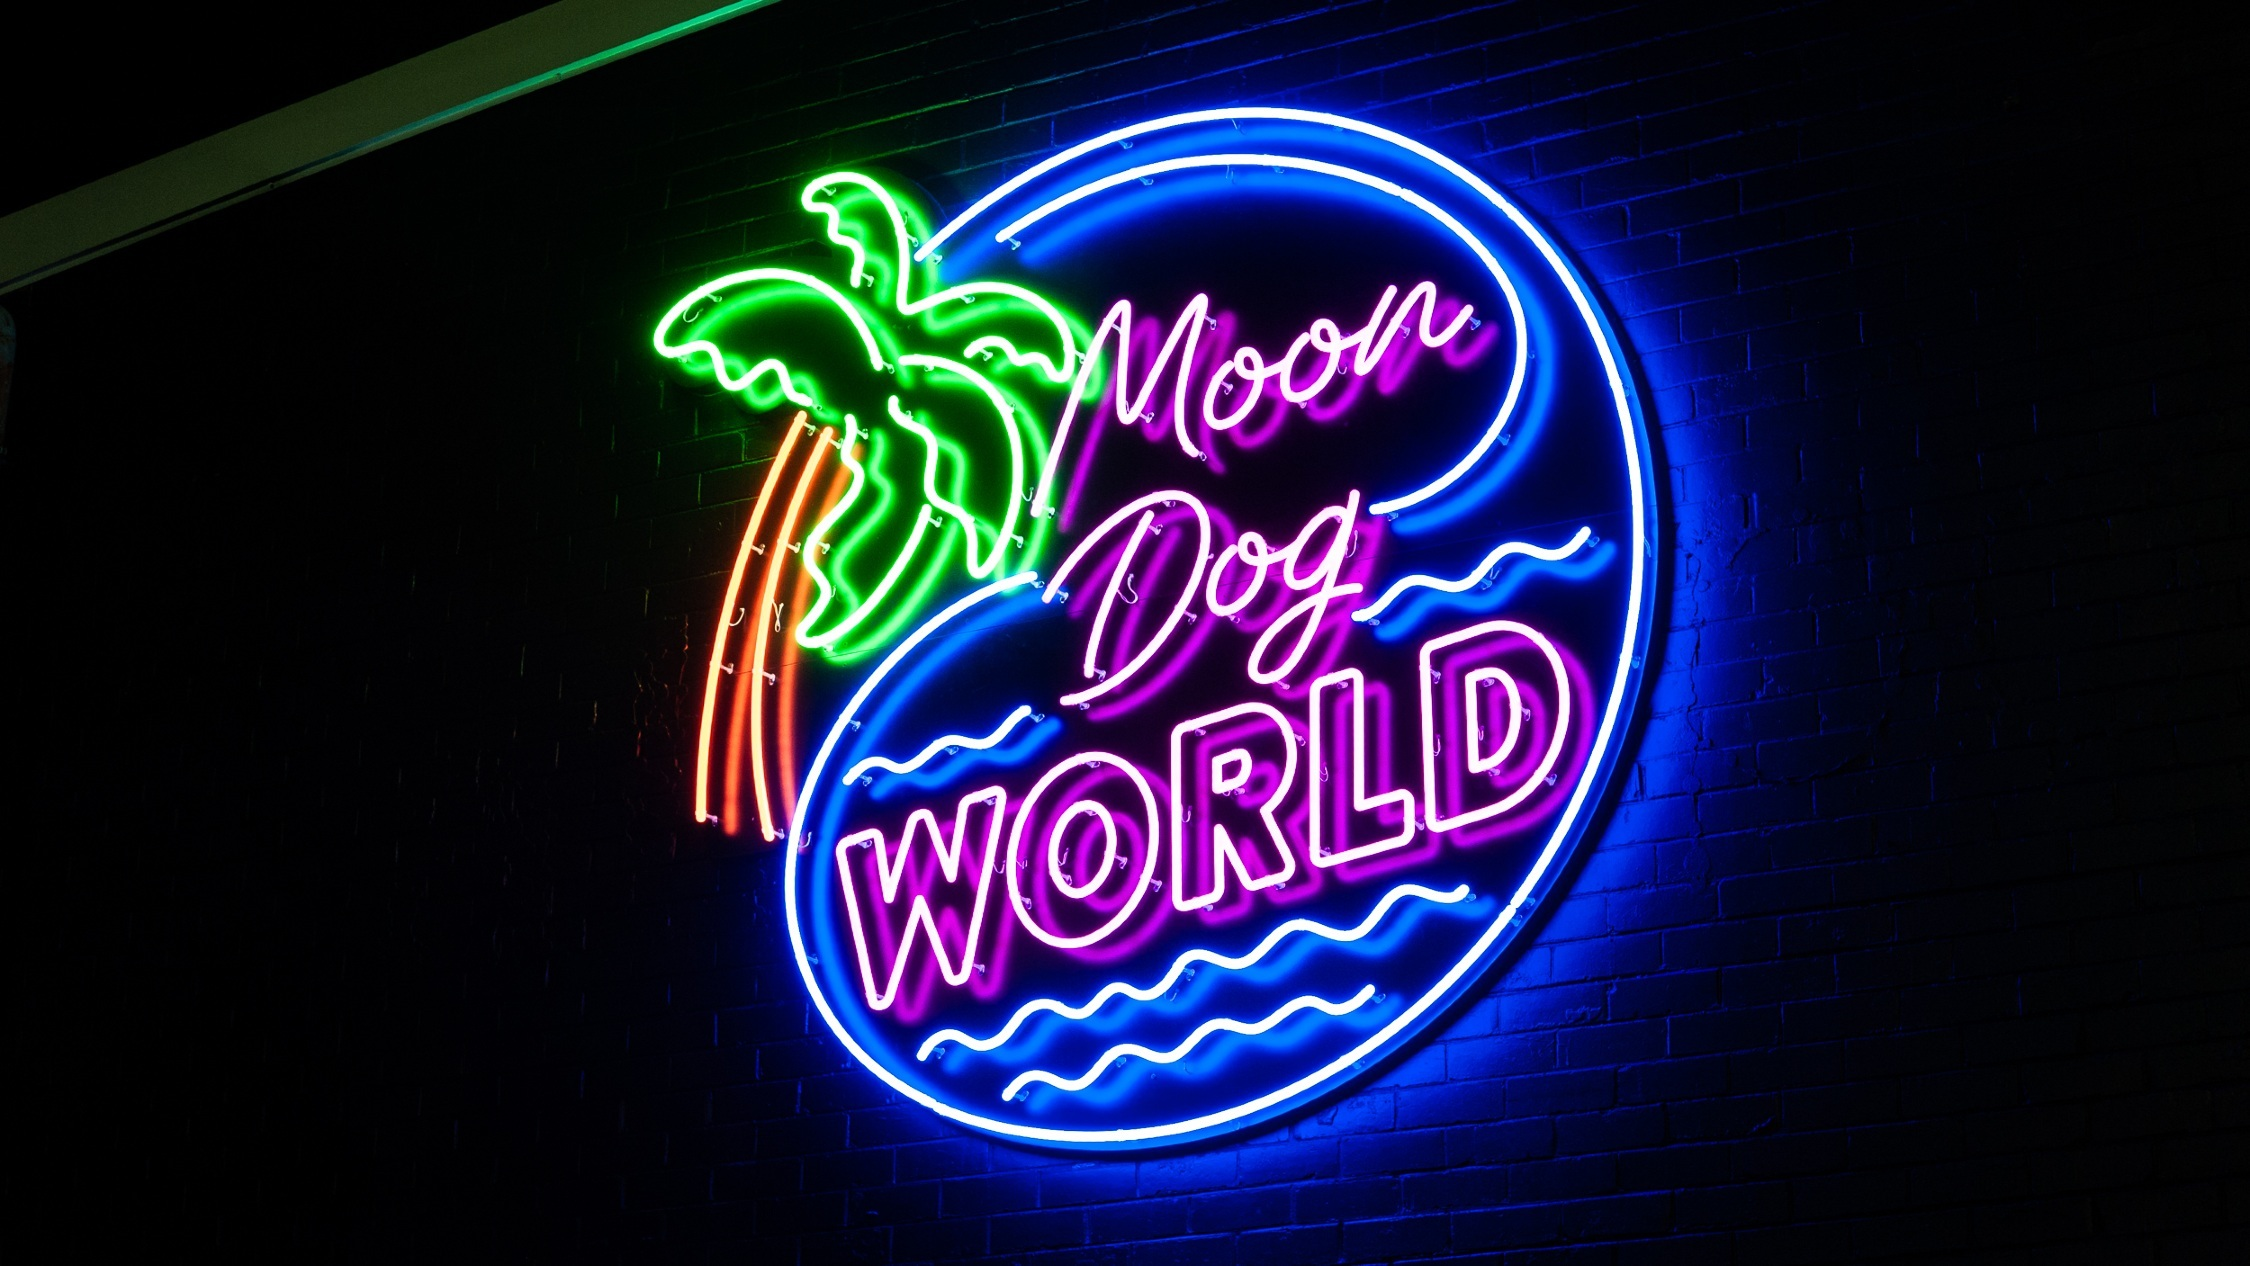 Moon Dog World neon sign